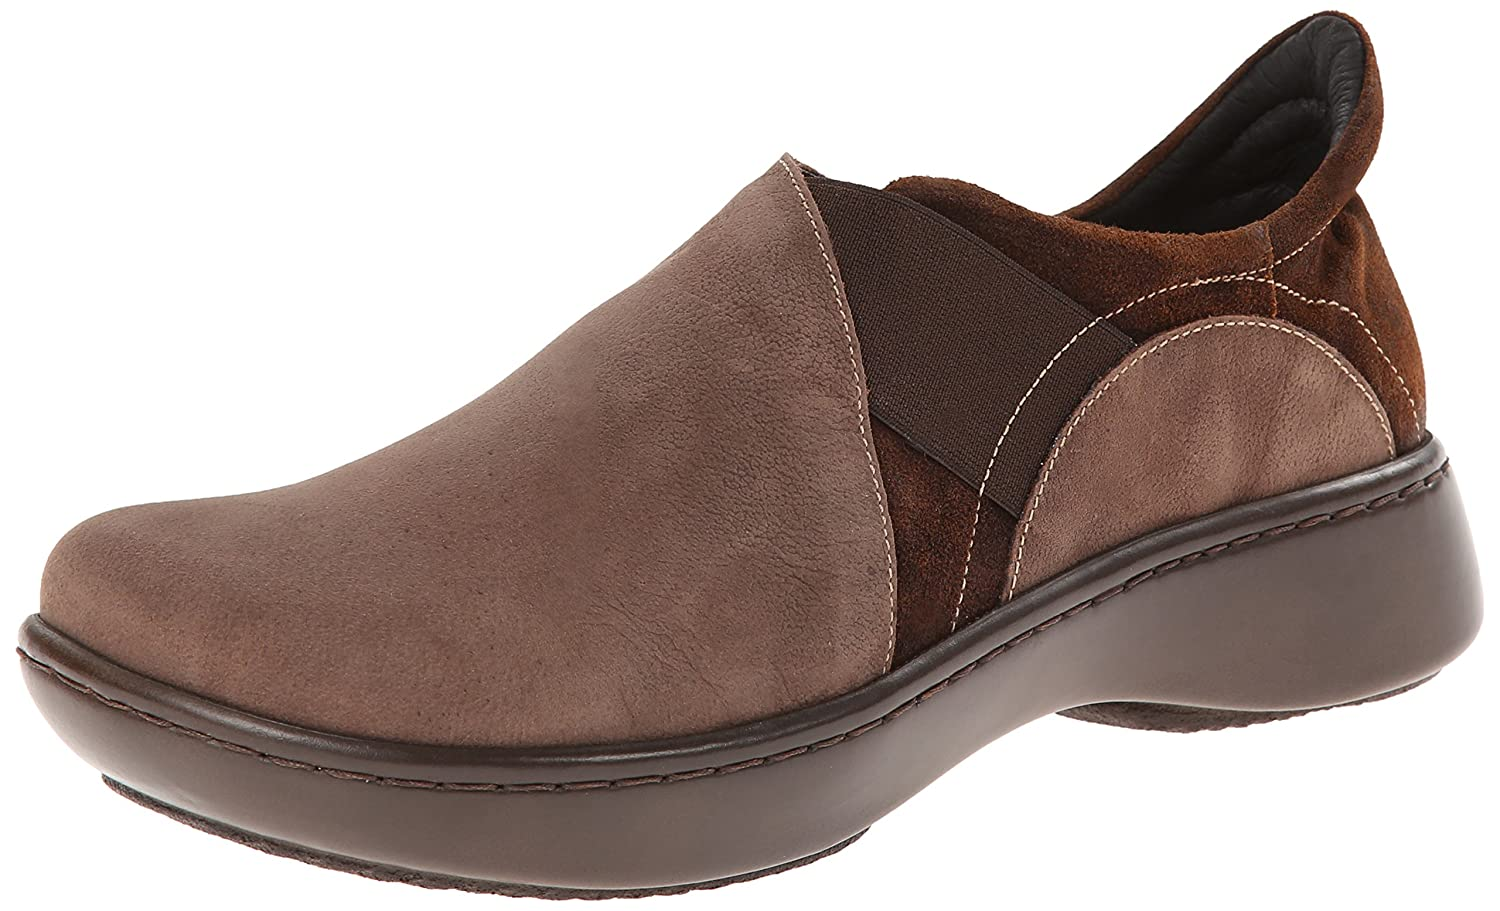 NAOT Women's Atlantic Flat B00IFQWXF6 35 EU/4.5-5 M US|Carob Brown Leather/Seal Brown Suede